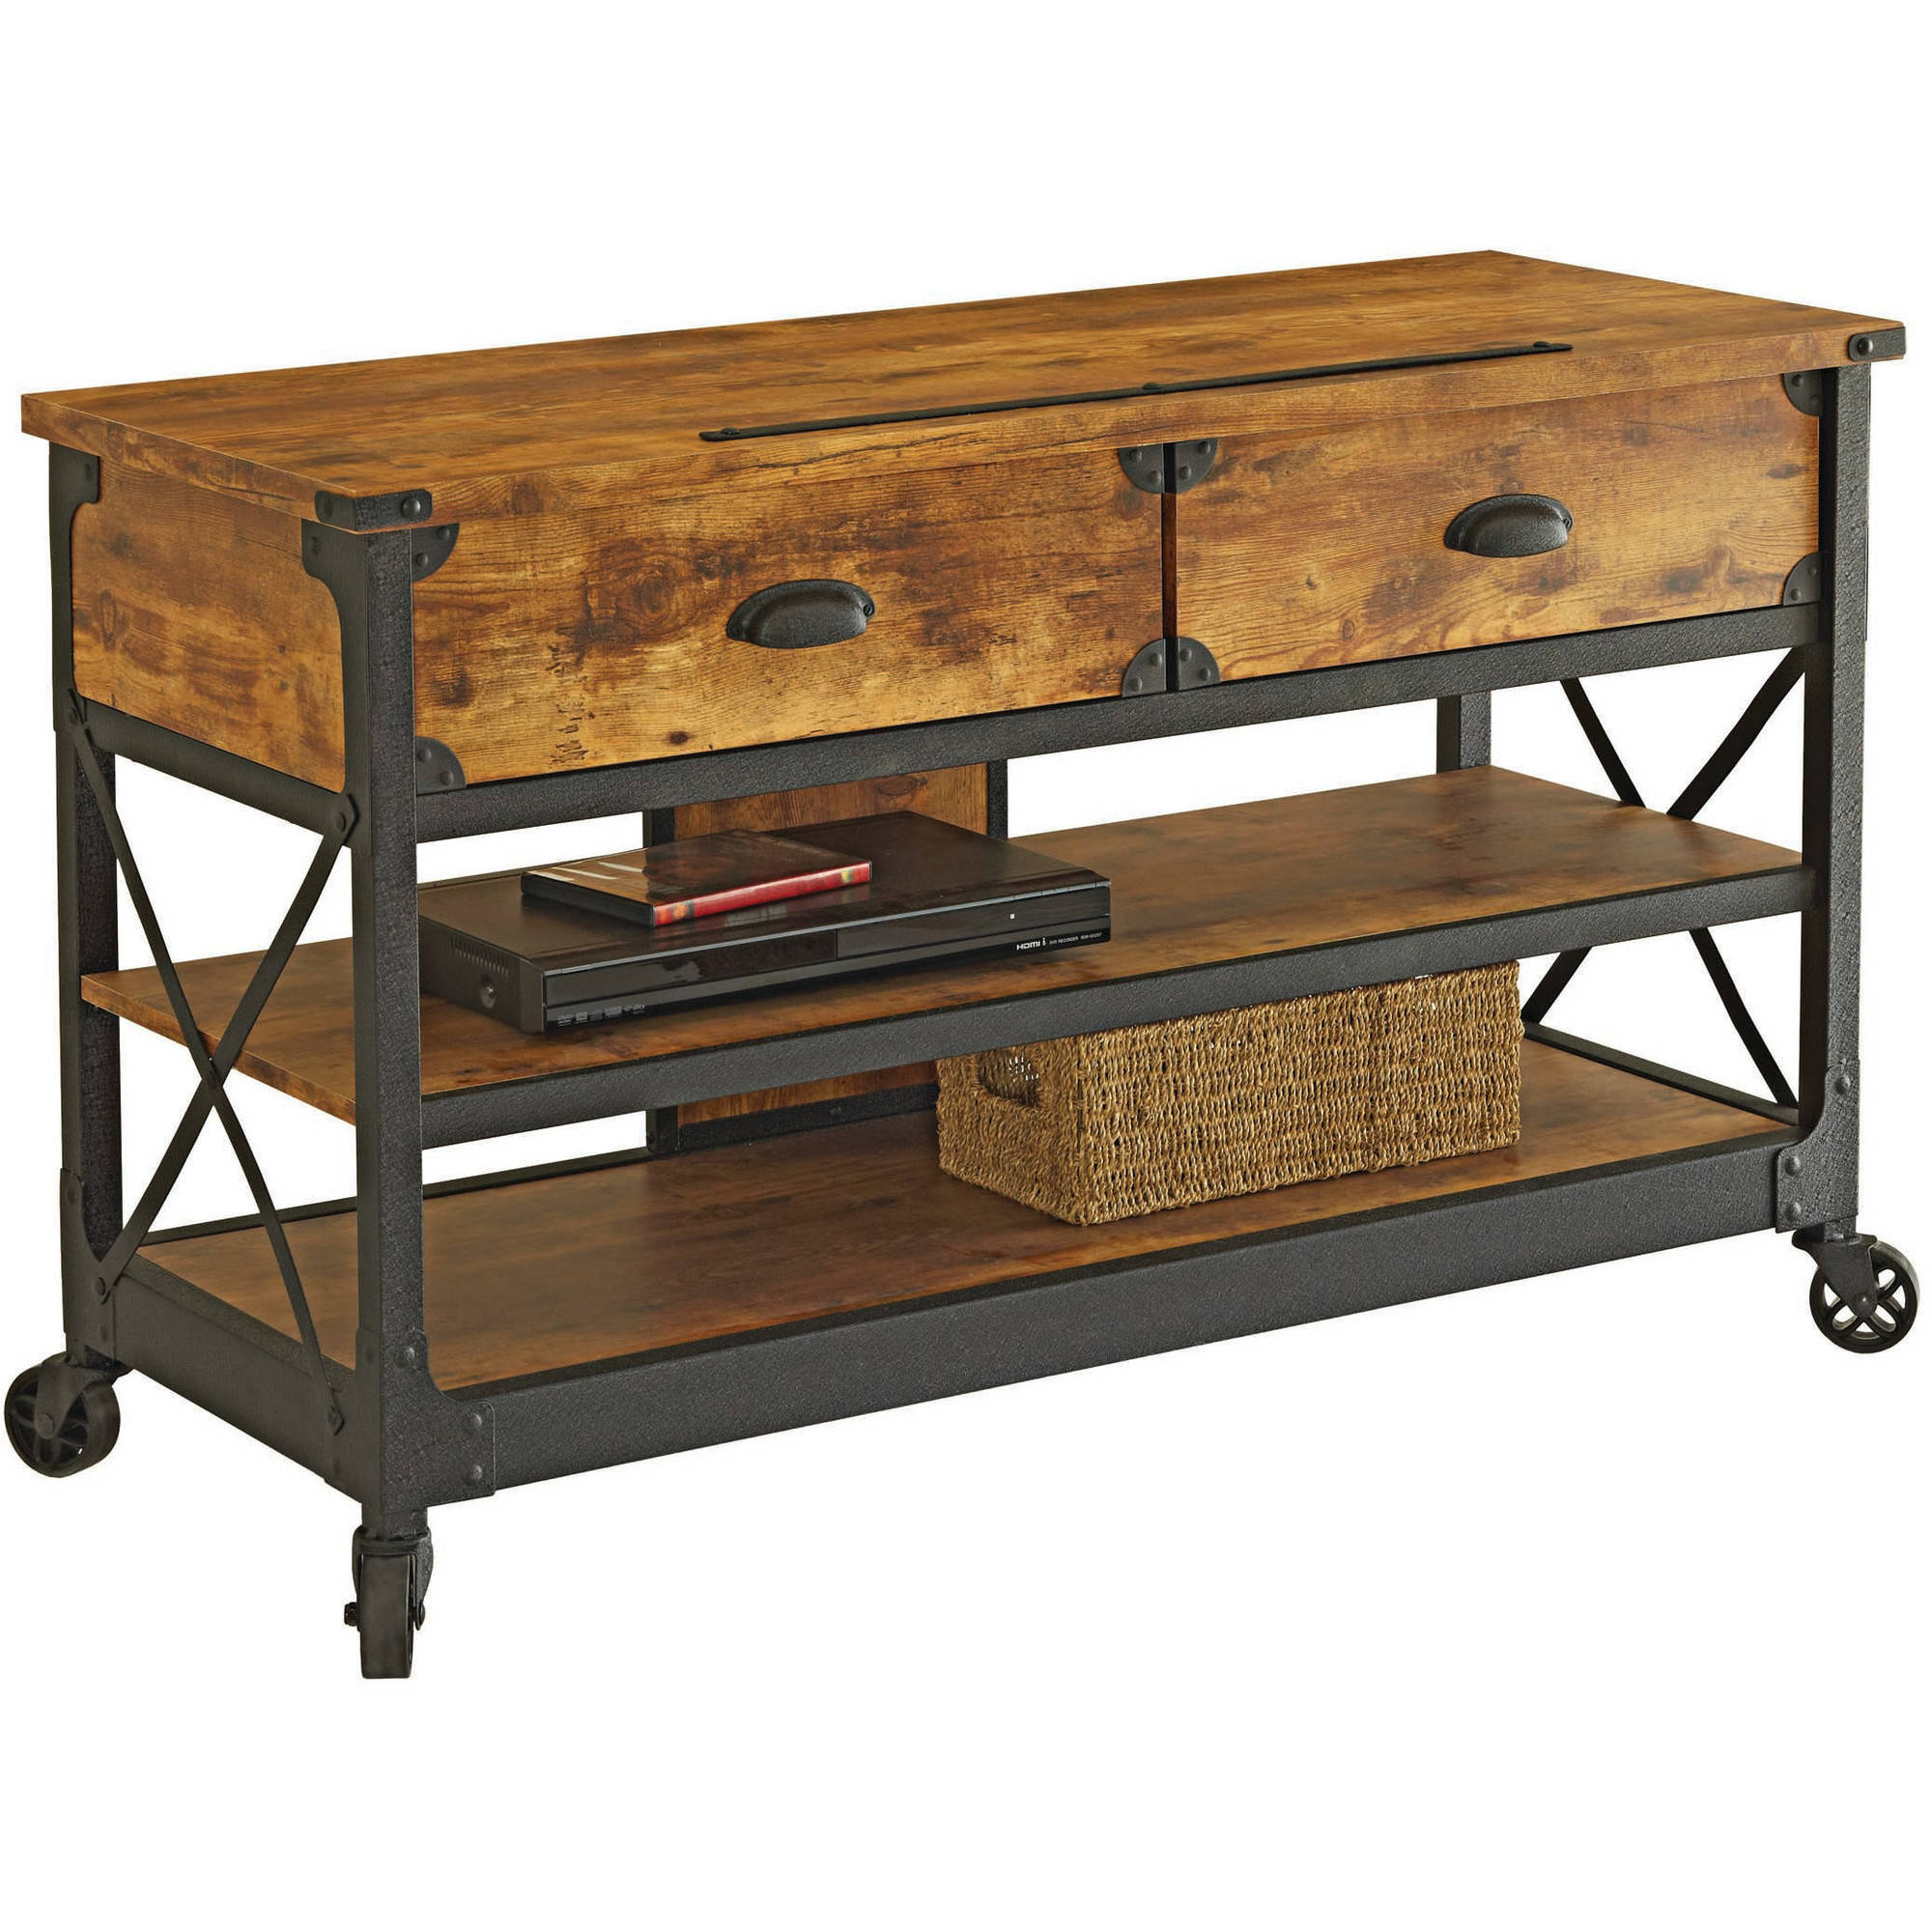 """Better Homes & Gardens Rustic Country TV Stand for TVs up to 52"""", Antiqued Black/Pine Finish"""